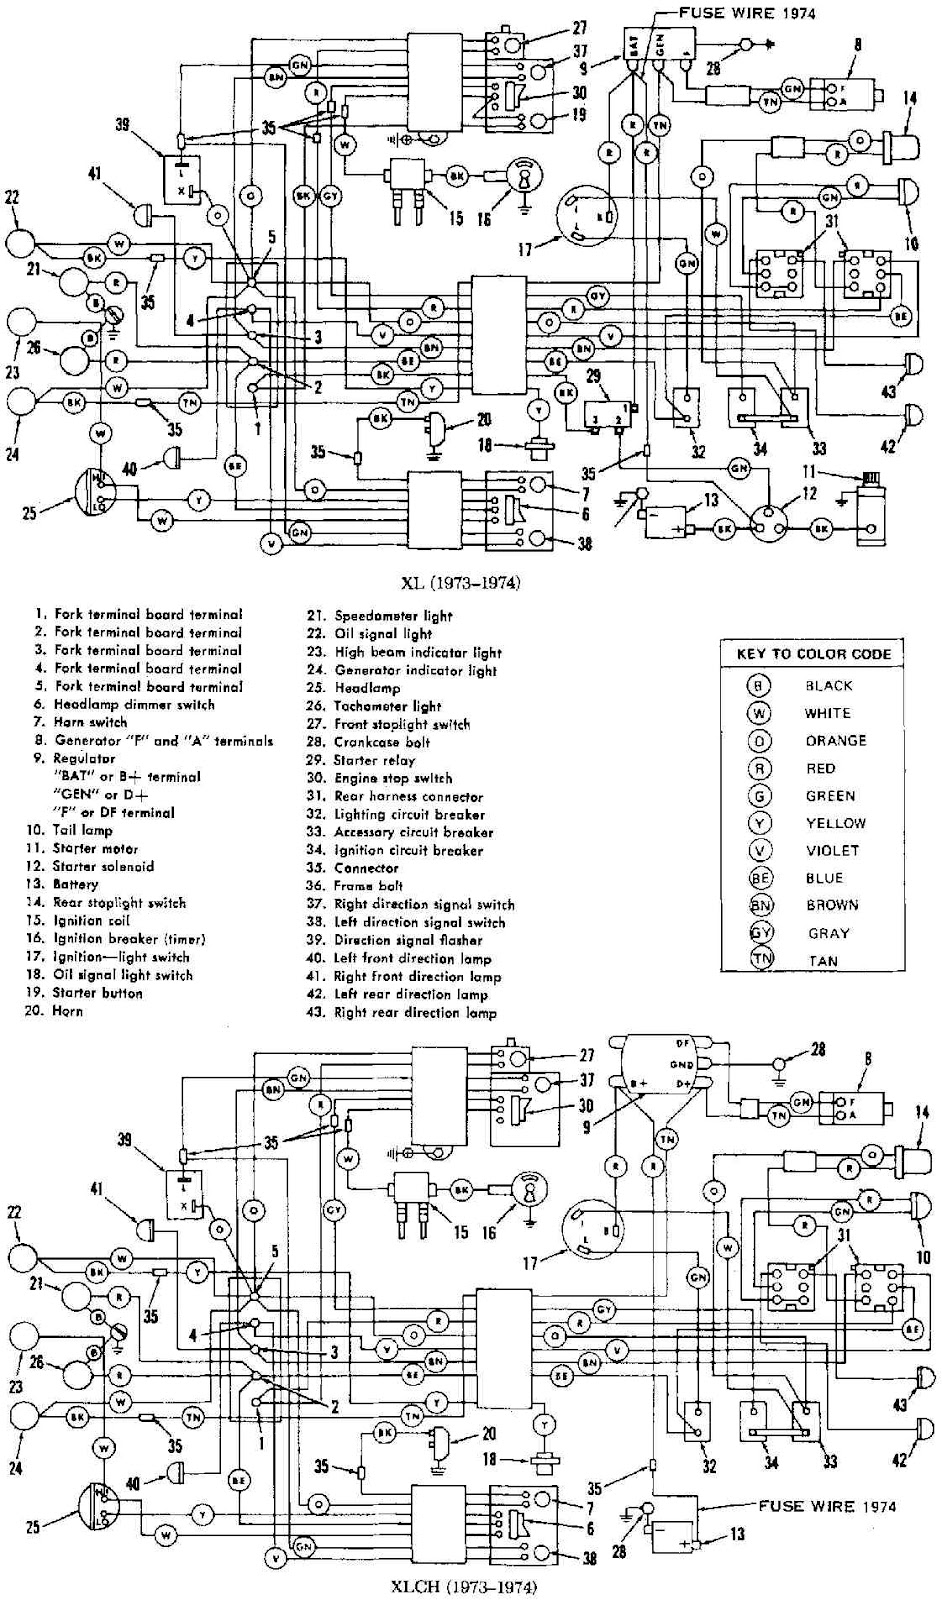 hight resolution of 1974 ironhead wiring diagram images gallery harley davidson xl xlch 1973 1974 motorcycle electrical